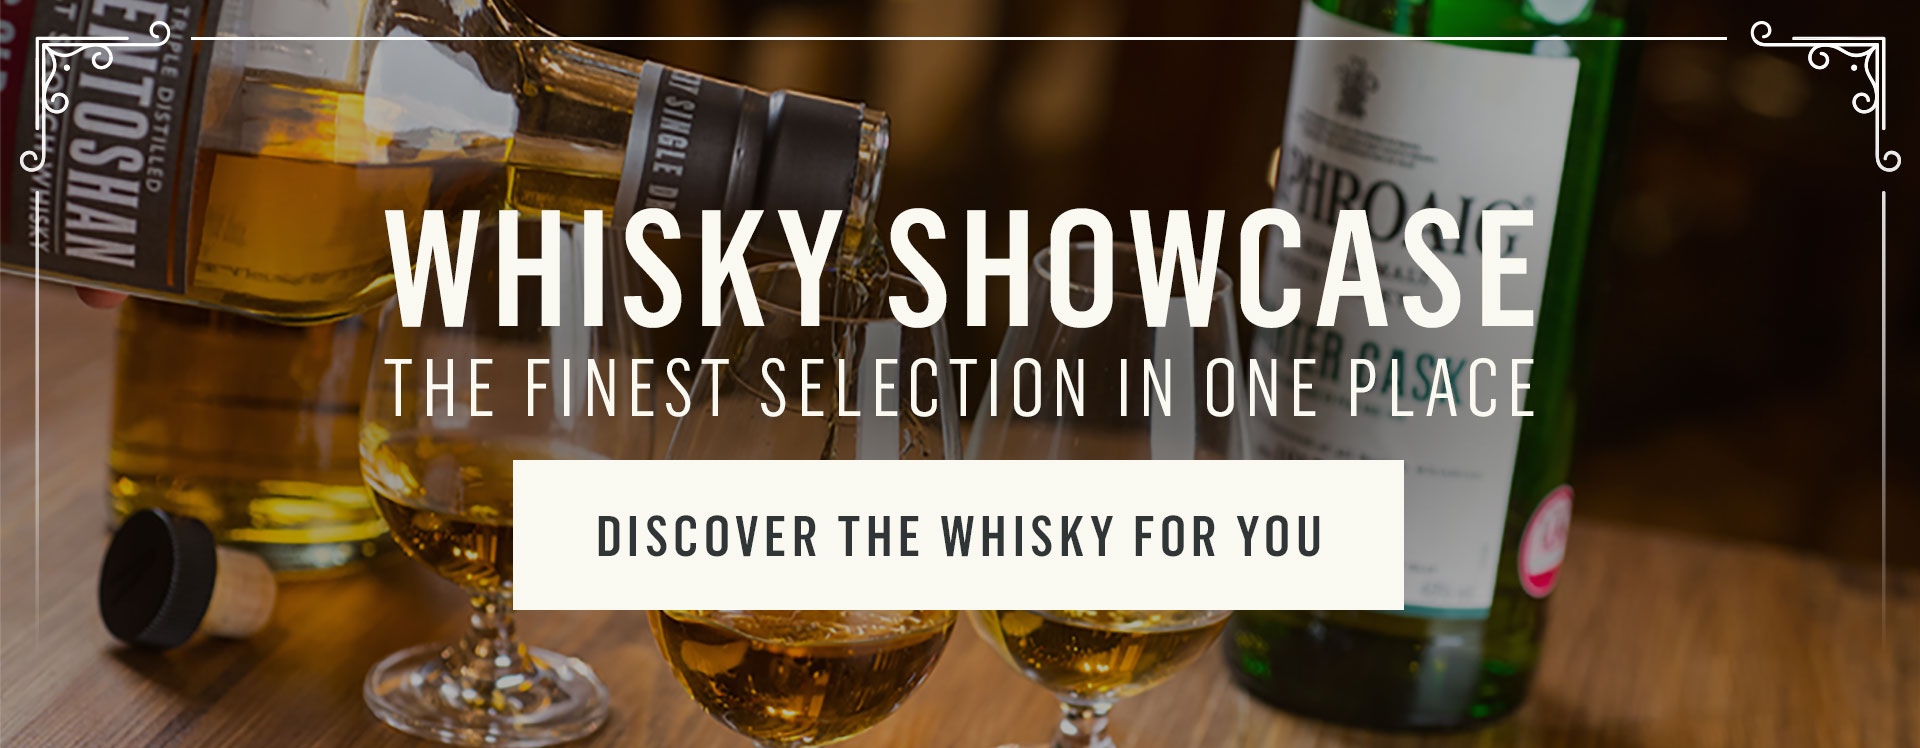 Whisky Showcase at Deacon Brodies Tavern in Edinburgh